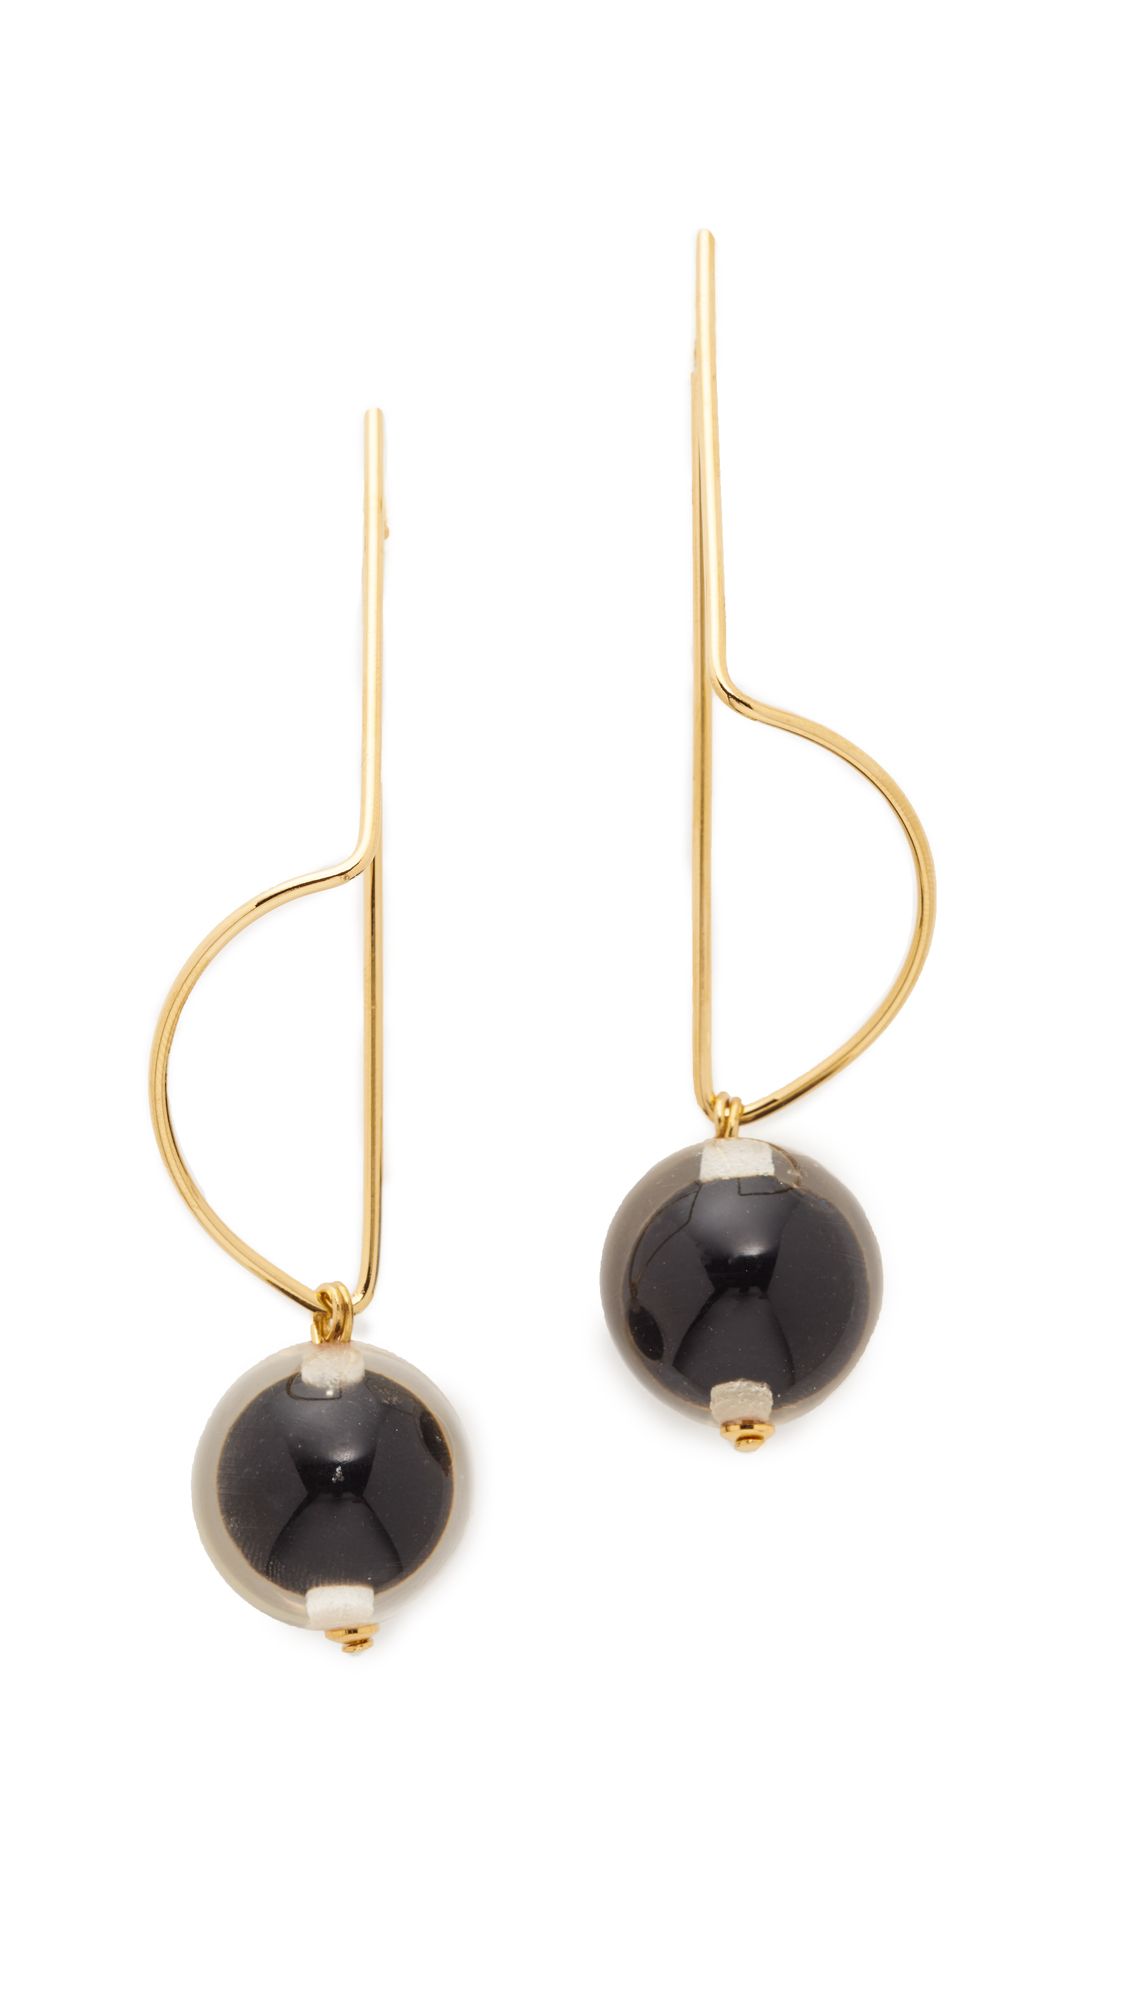 Marni Earrings with Sphere - Black